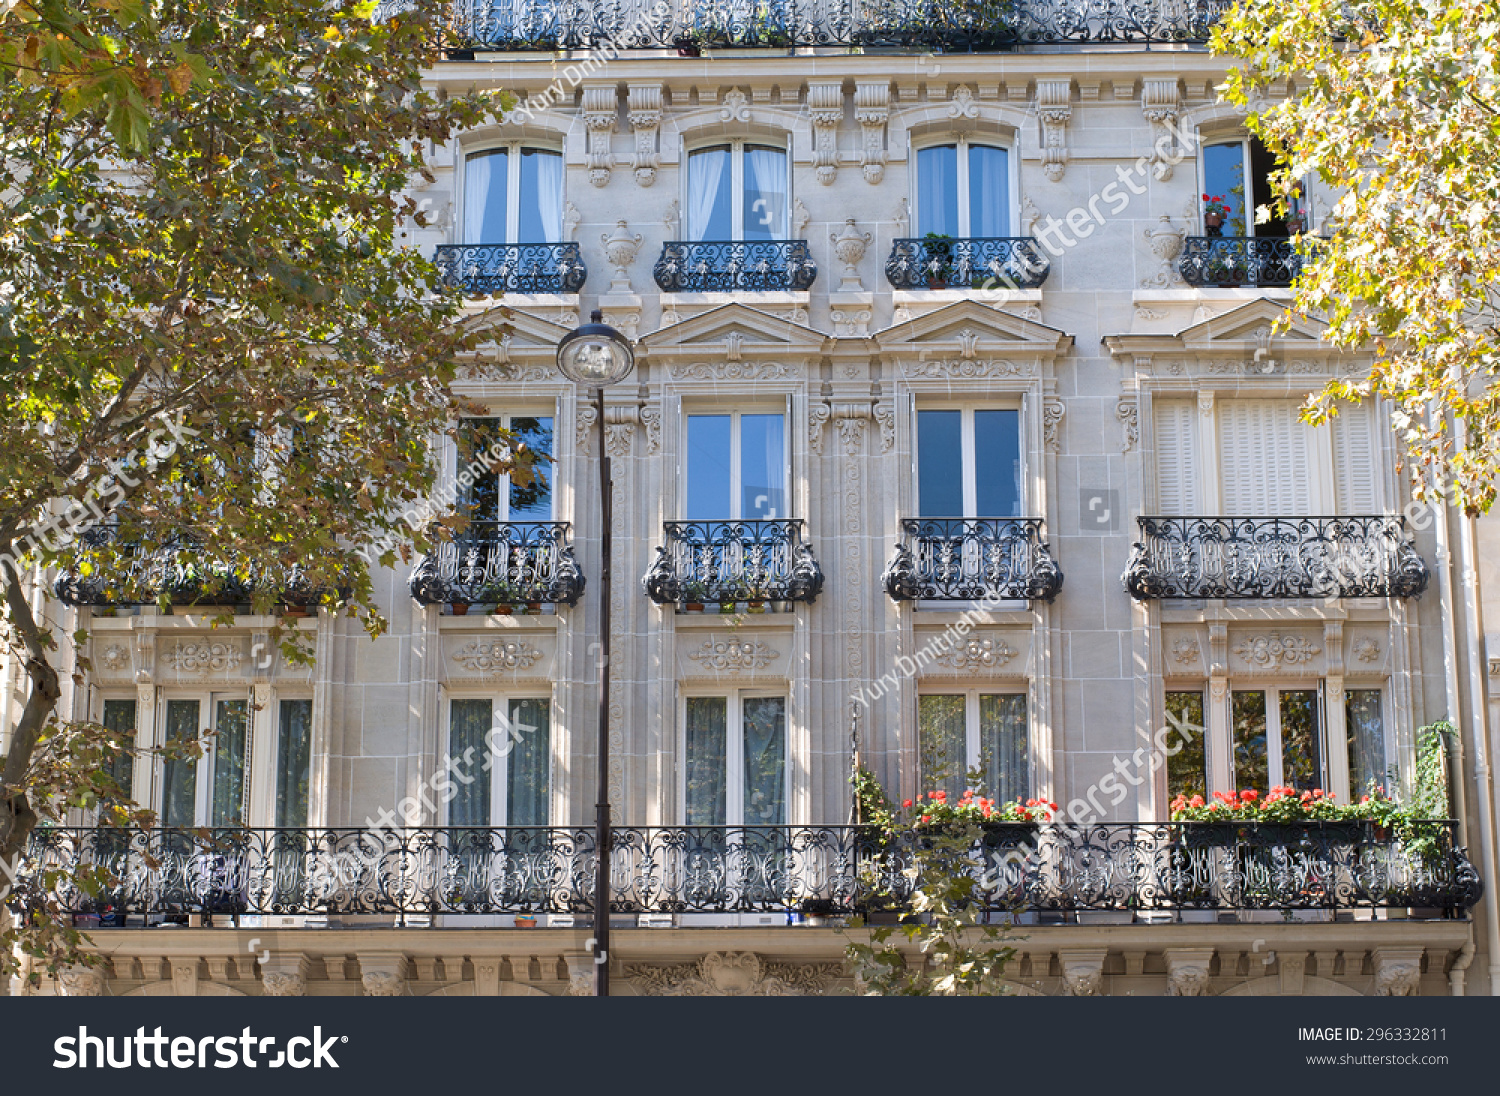 typical design parisian architecture facade french stock photo 296332811 shutterstock. Black Bedroom Furniture Sets. Home Design Ideas